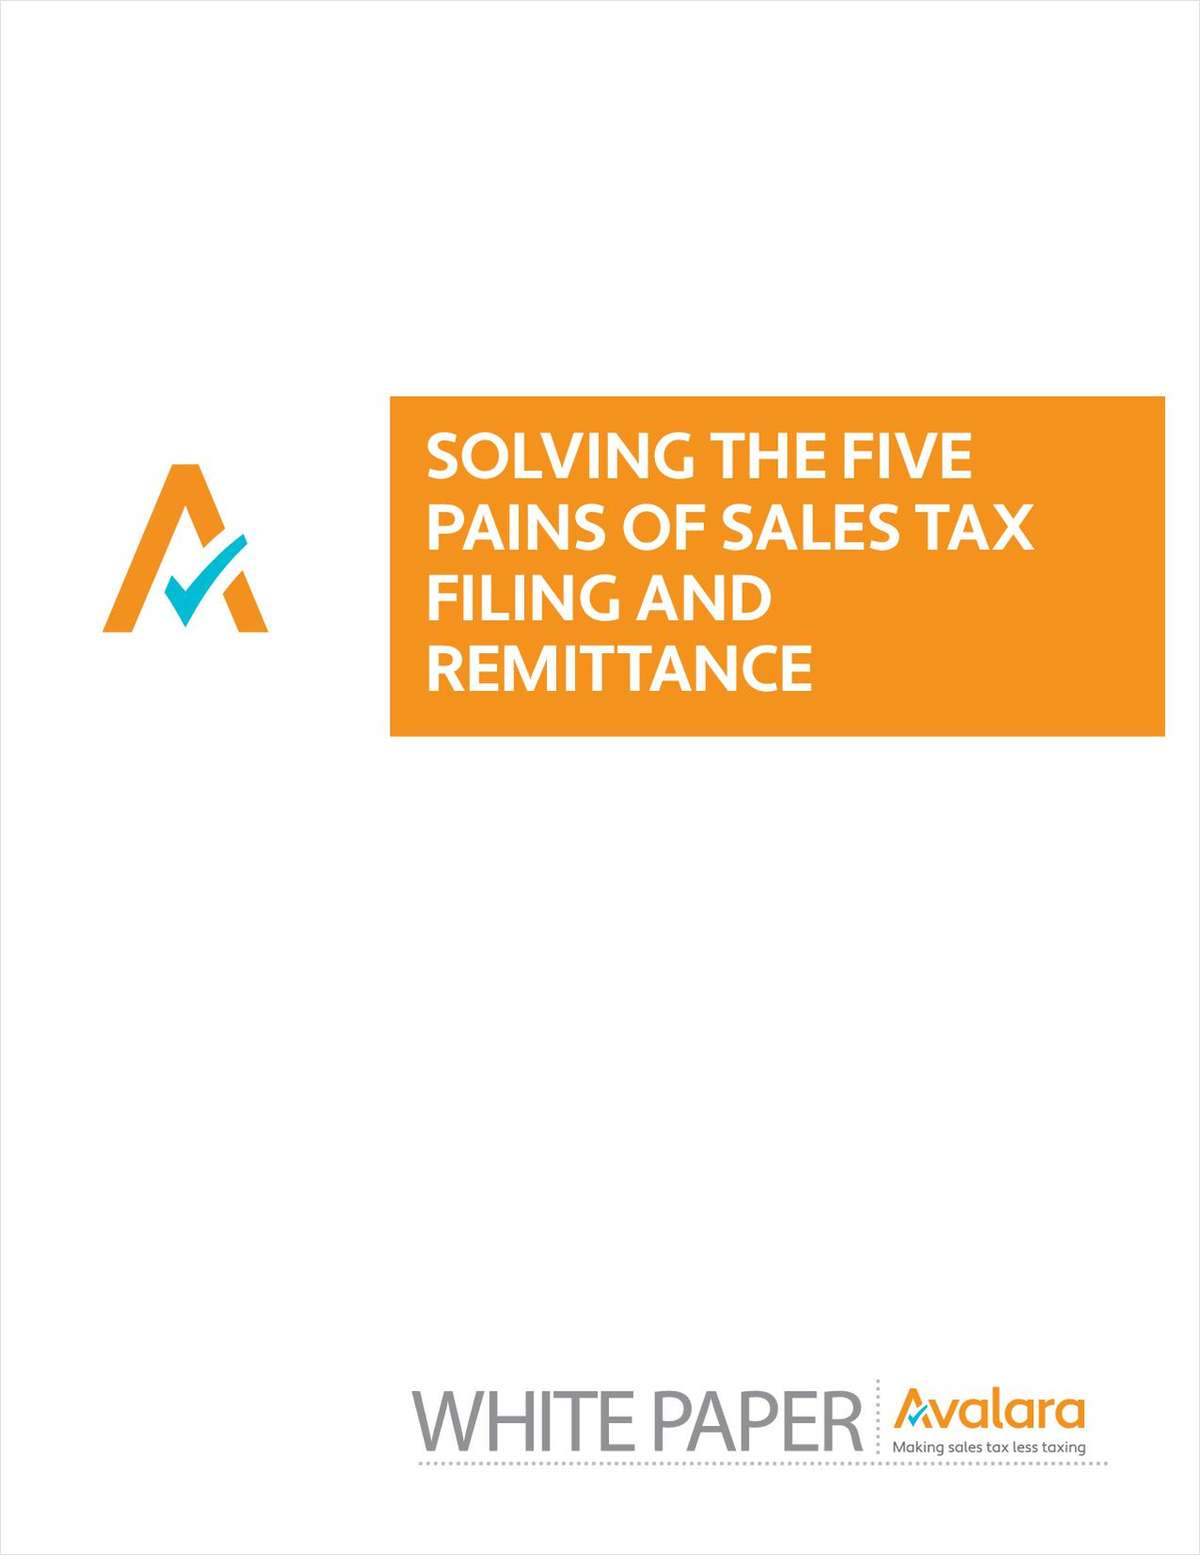 Solving The Five Pain Points Of Sales Tax Filing And Remittance